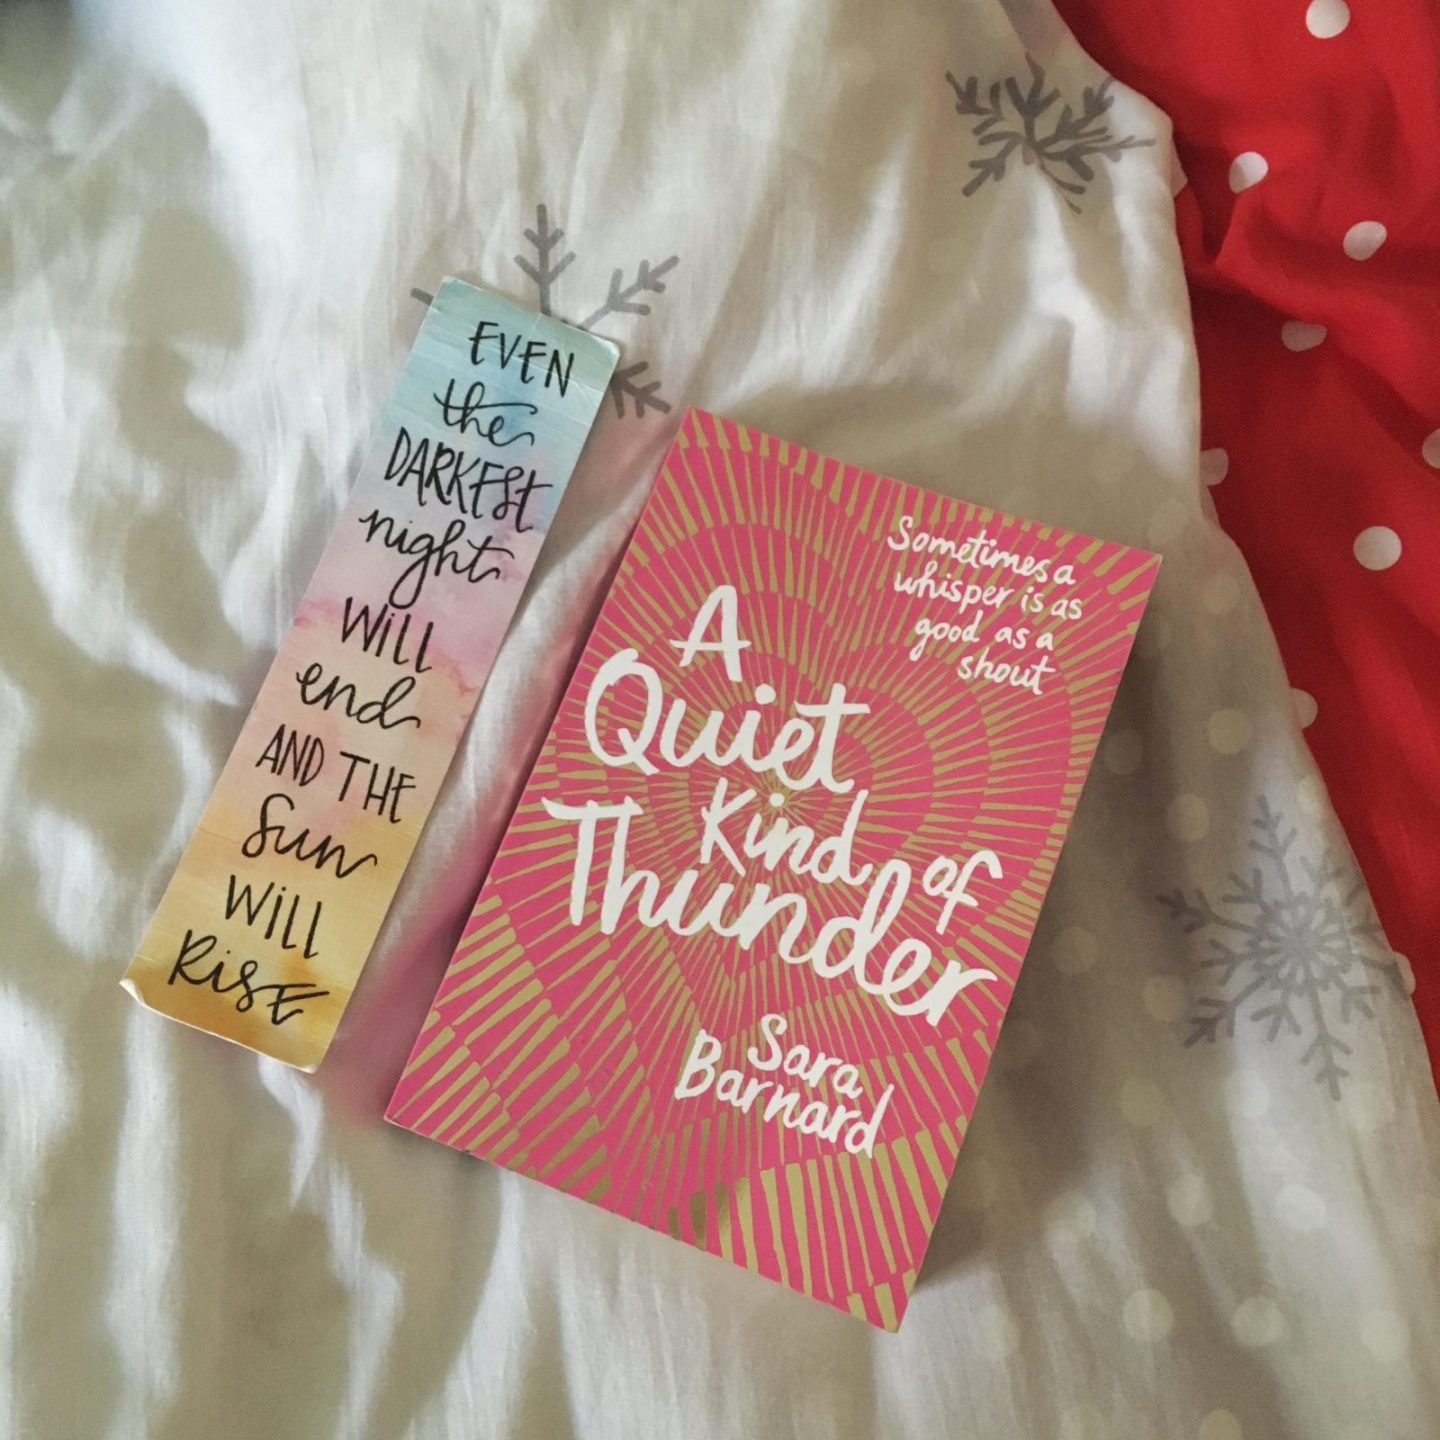 pink book on bedsheets, next to bookmark